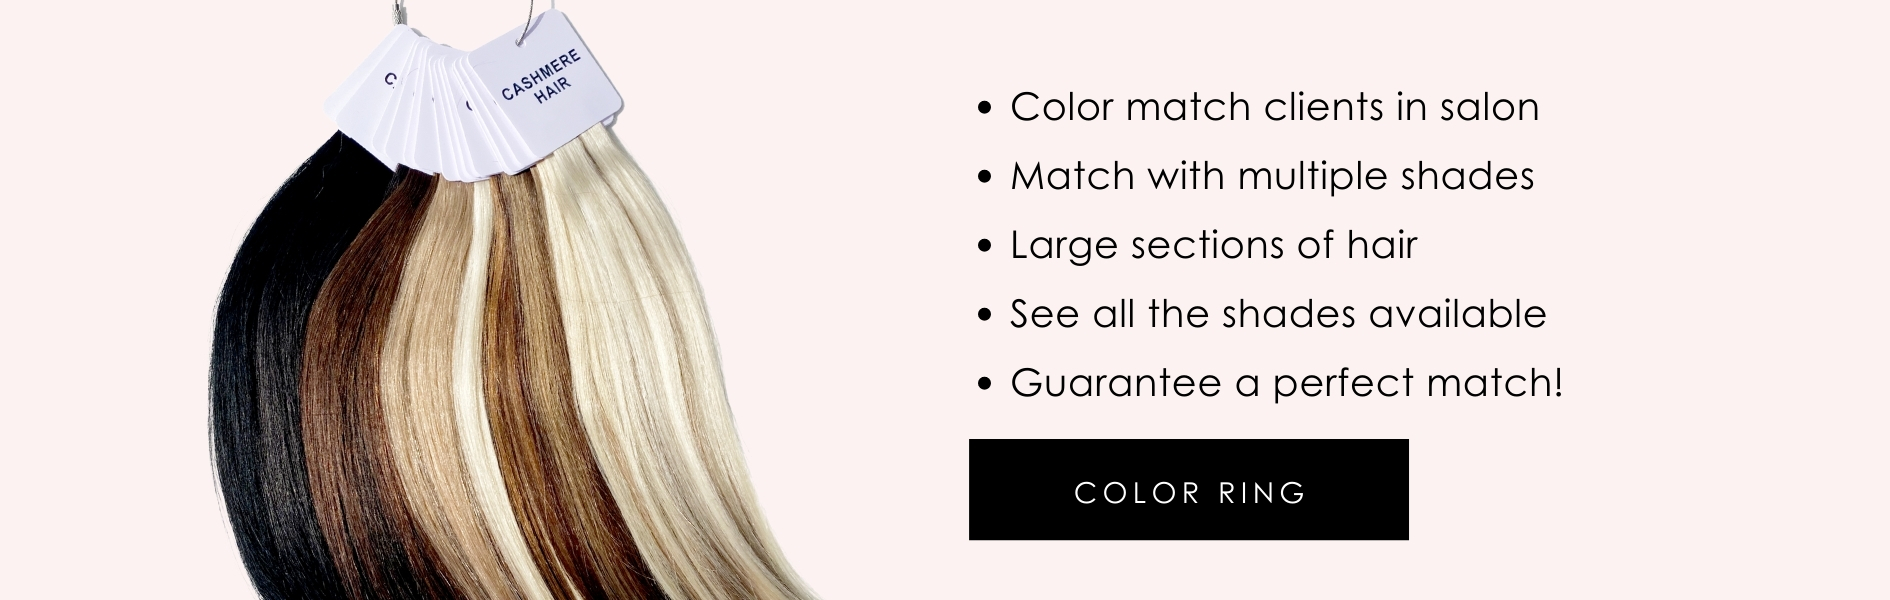 color-ring-for-hand-tied-extensions-cashmere-hair.jpg